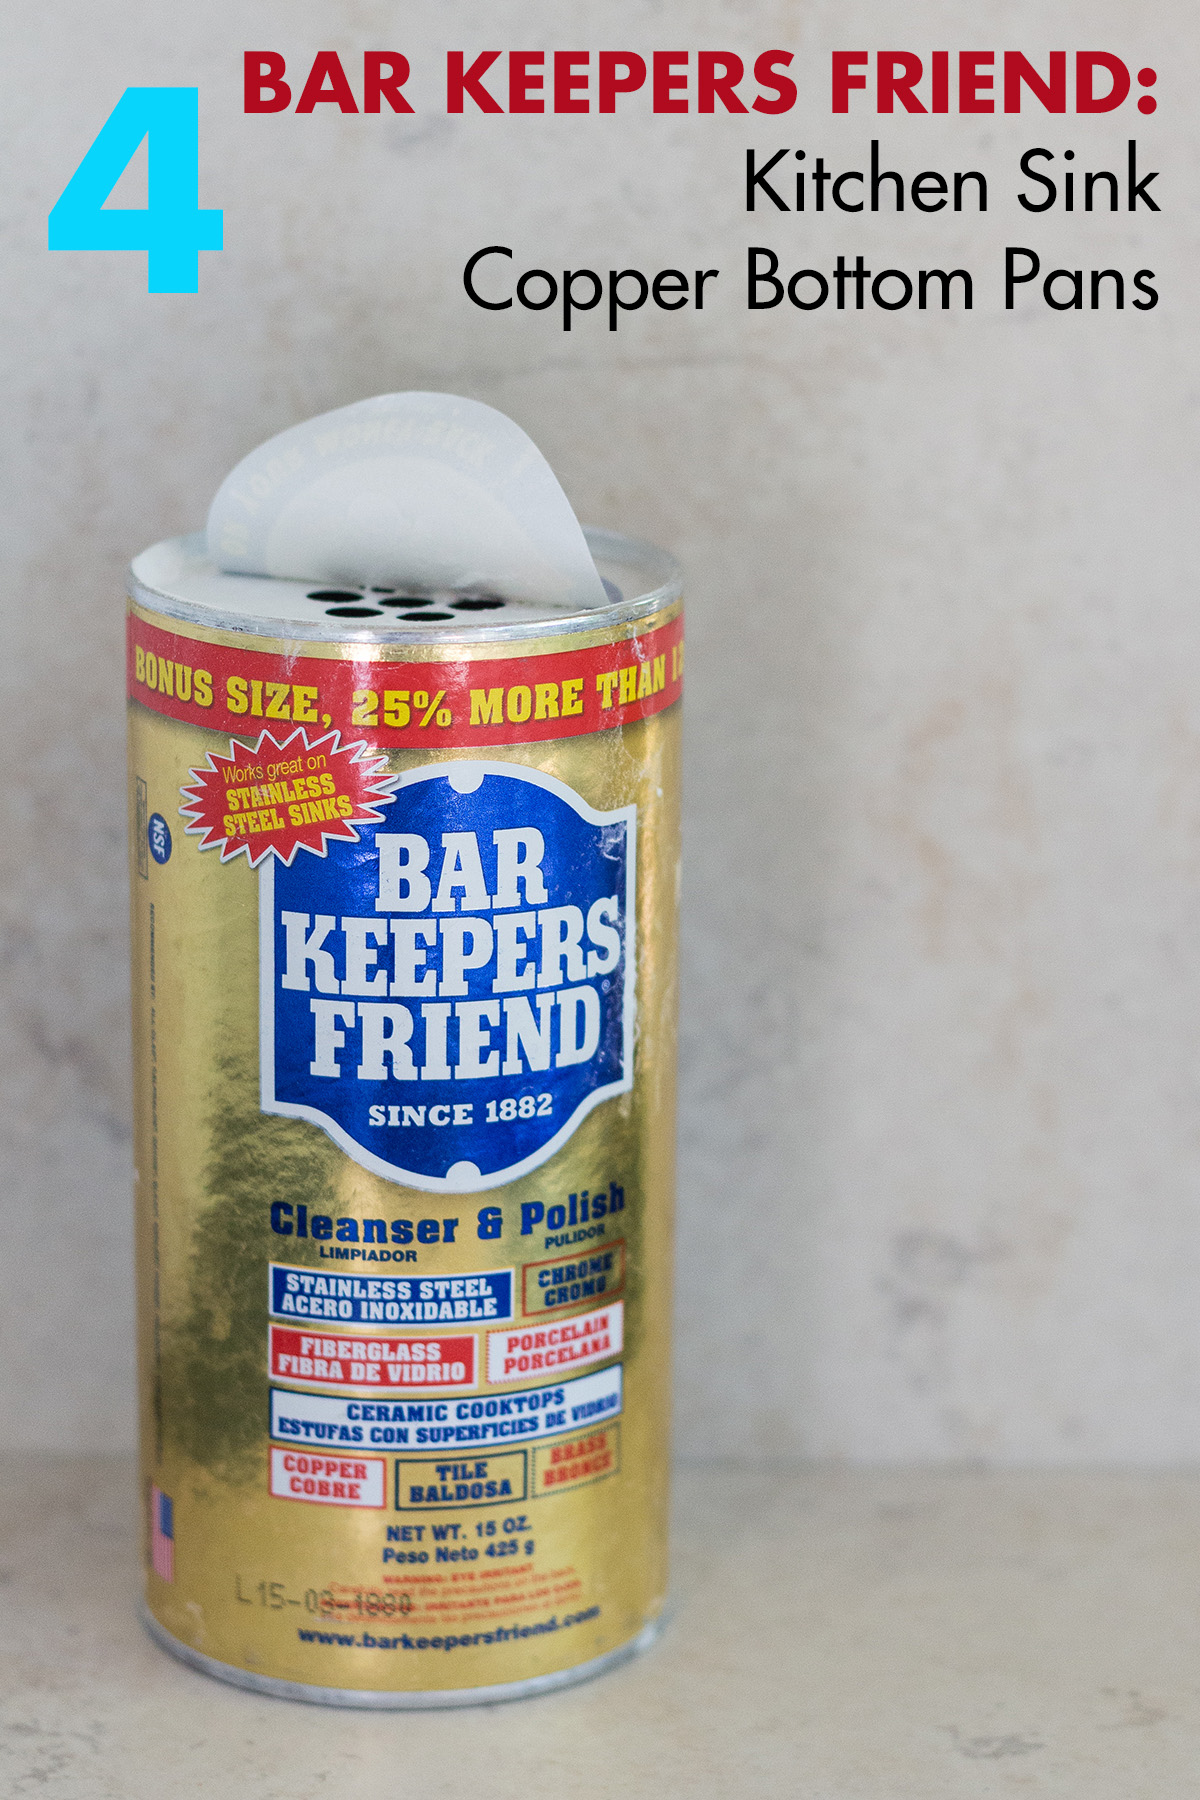 Bar Keepers Friend to Clean Sinks and Polish Copper Pans